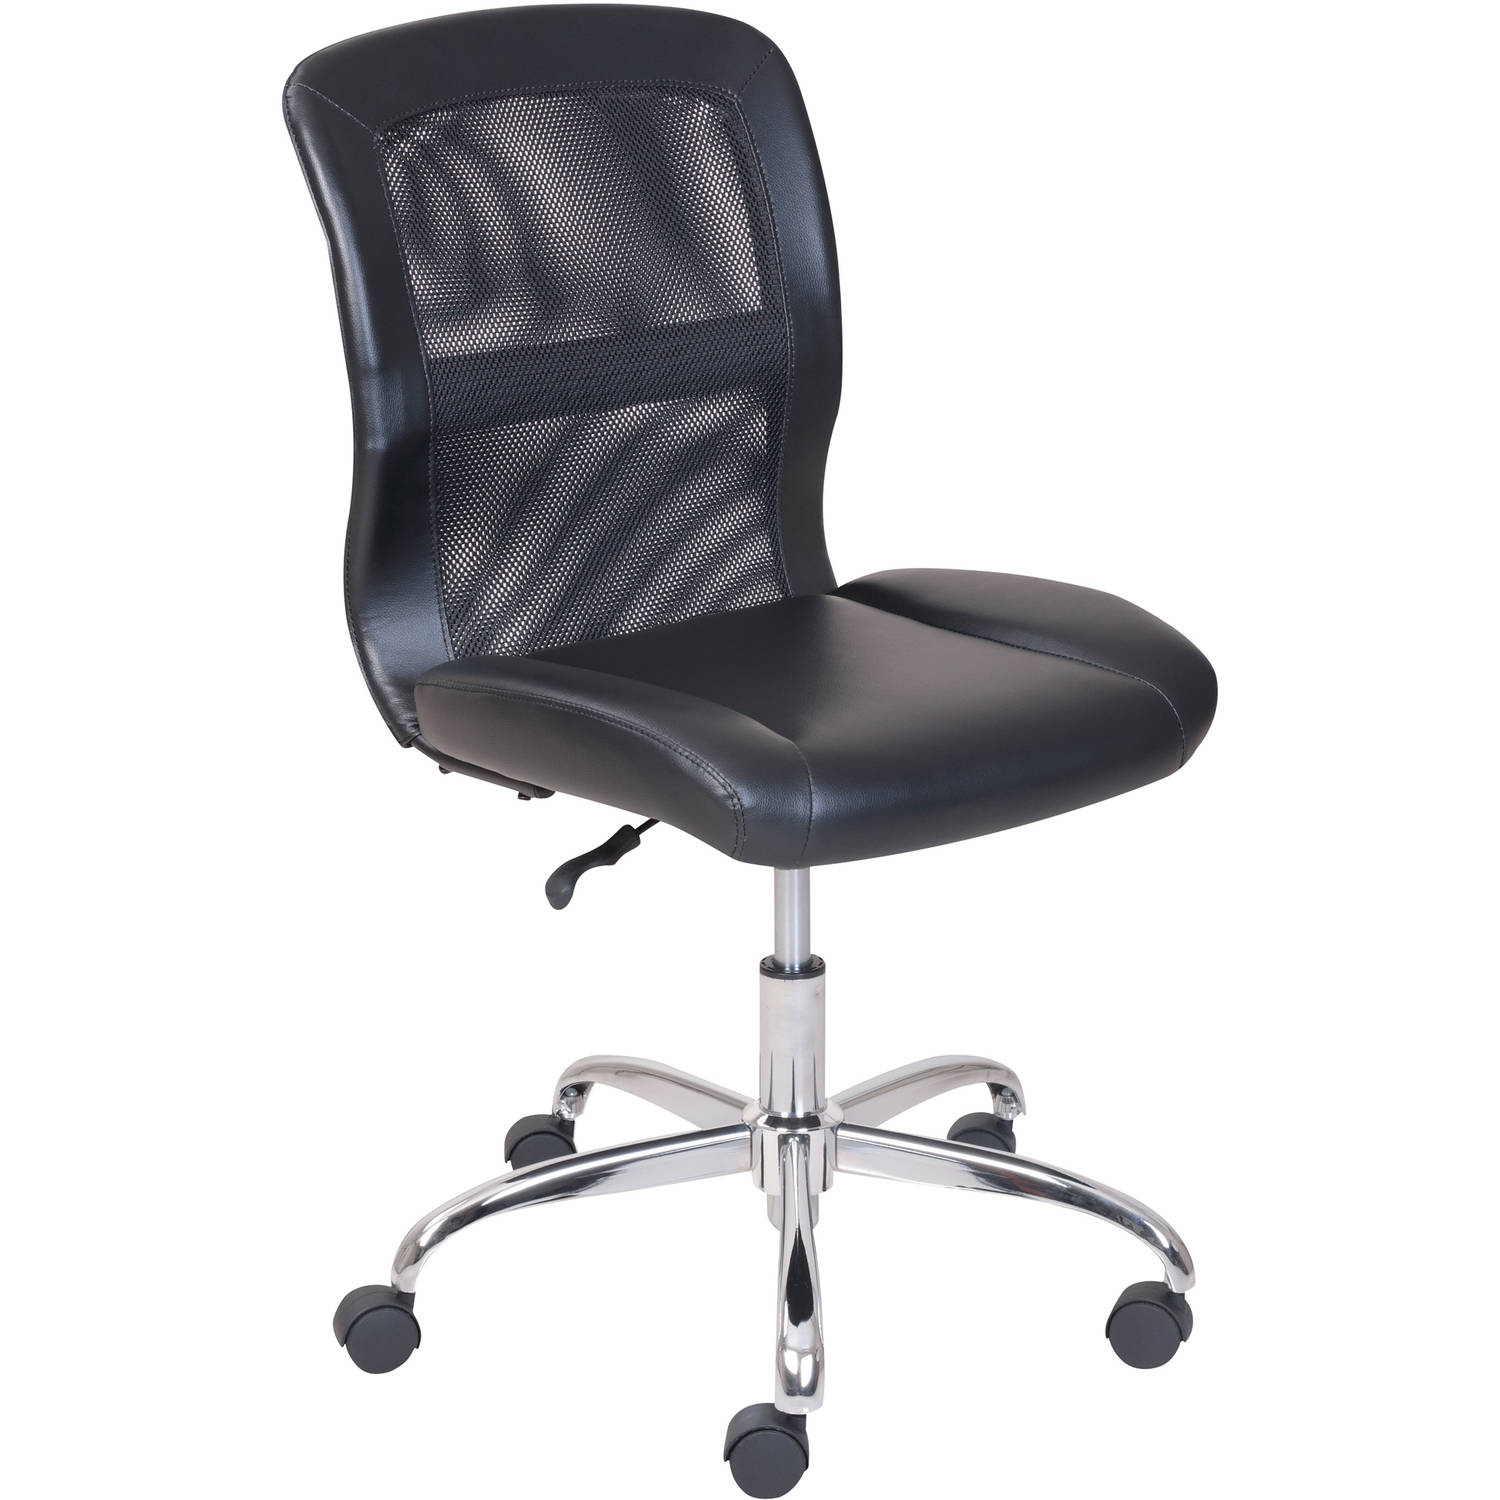 white rolling chair tall back chairs mainstays vinyl and mesh task office multiple colors